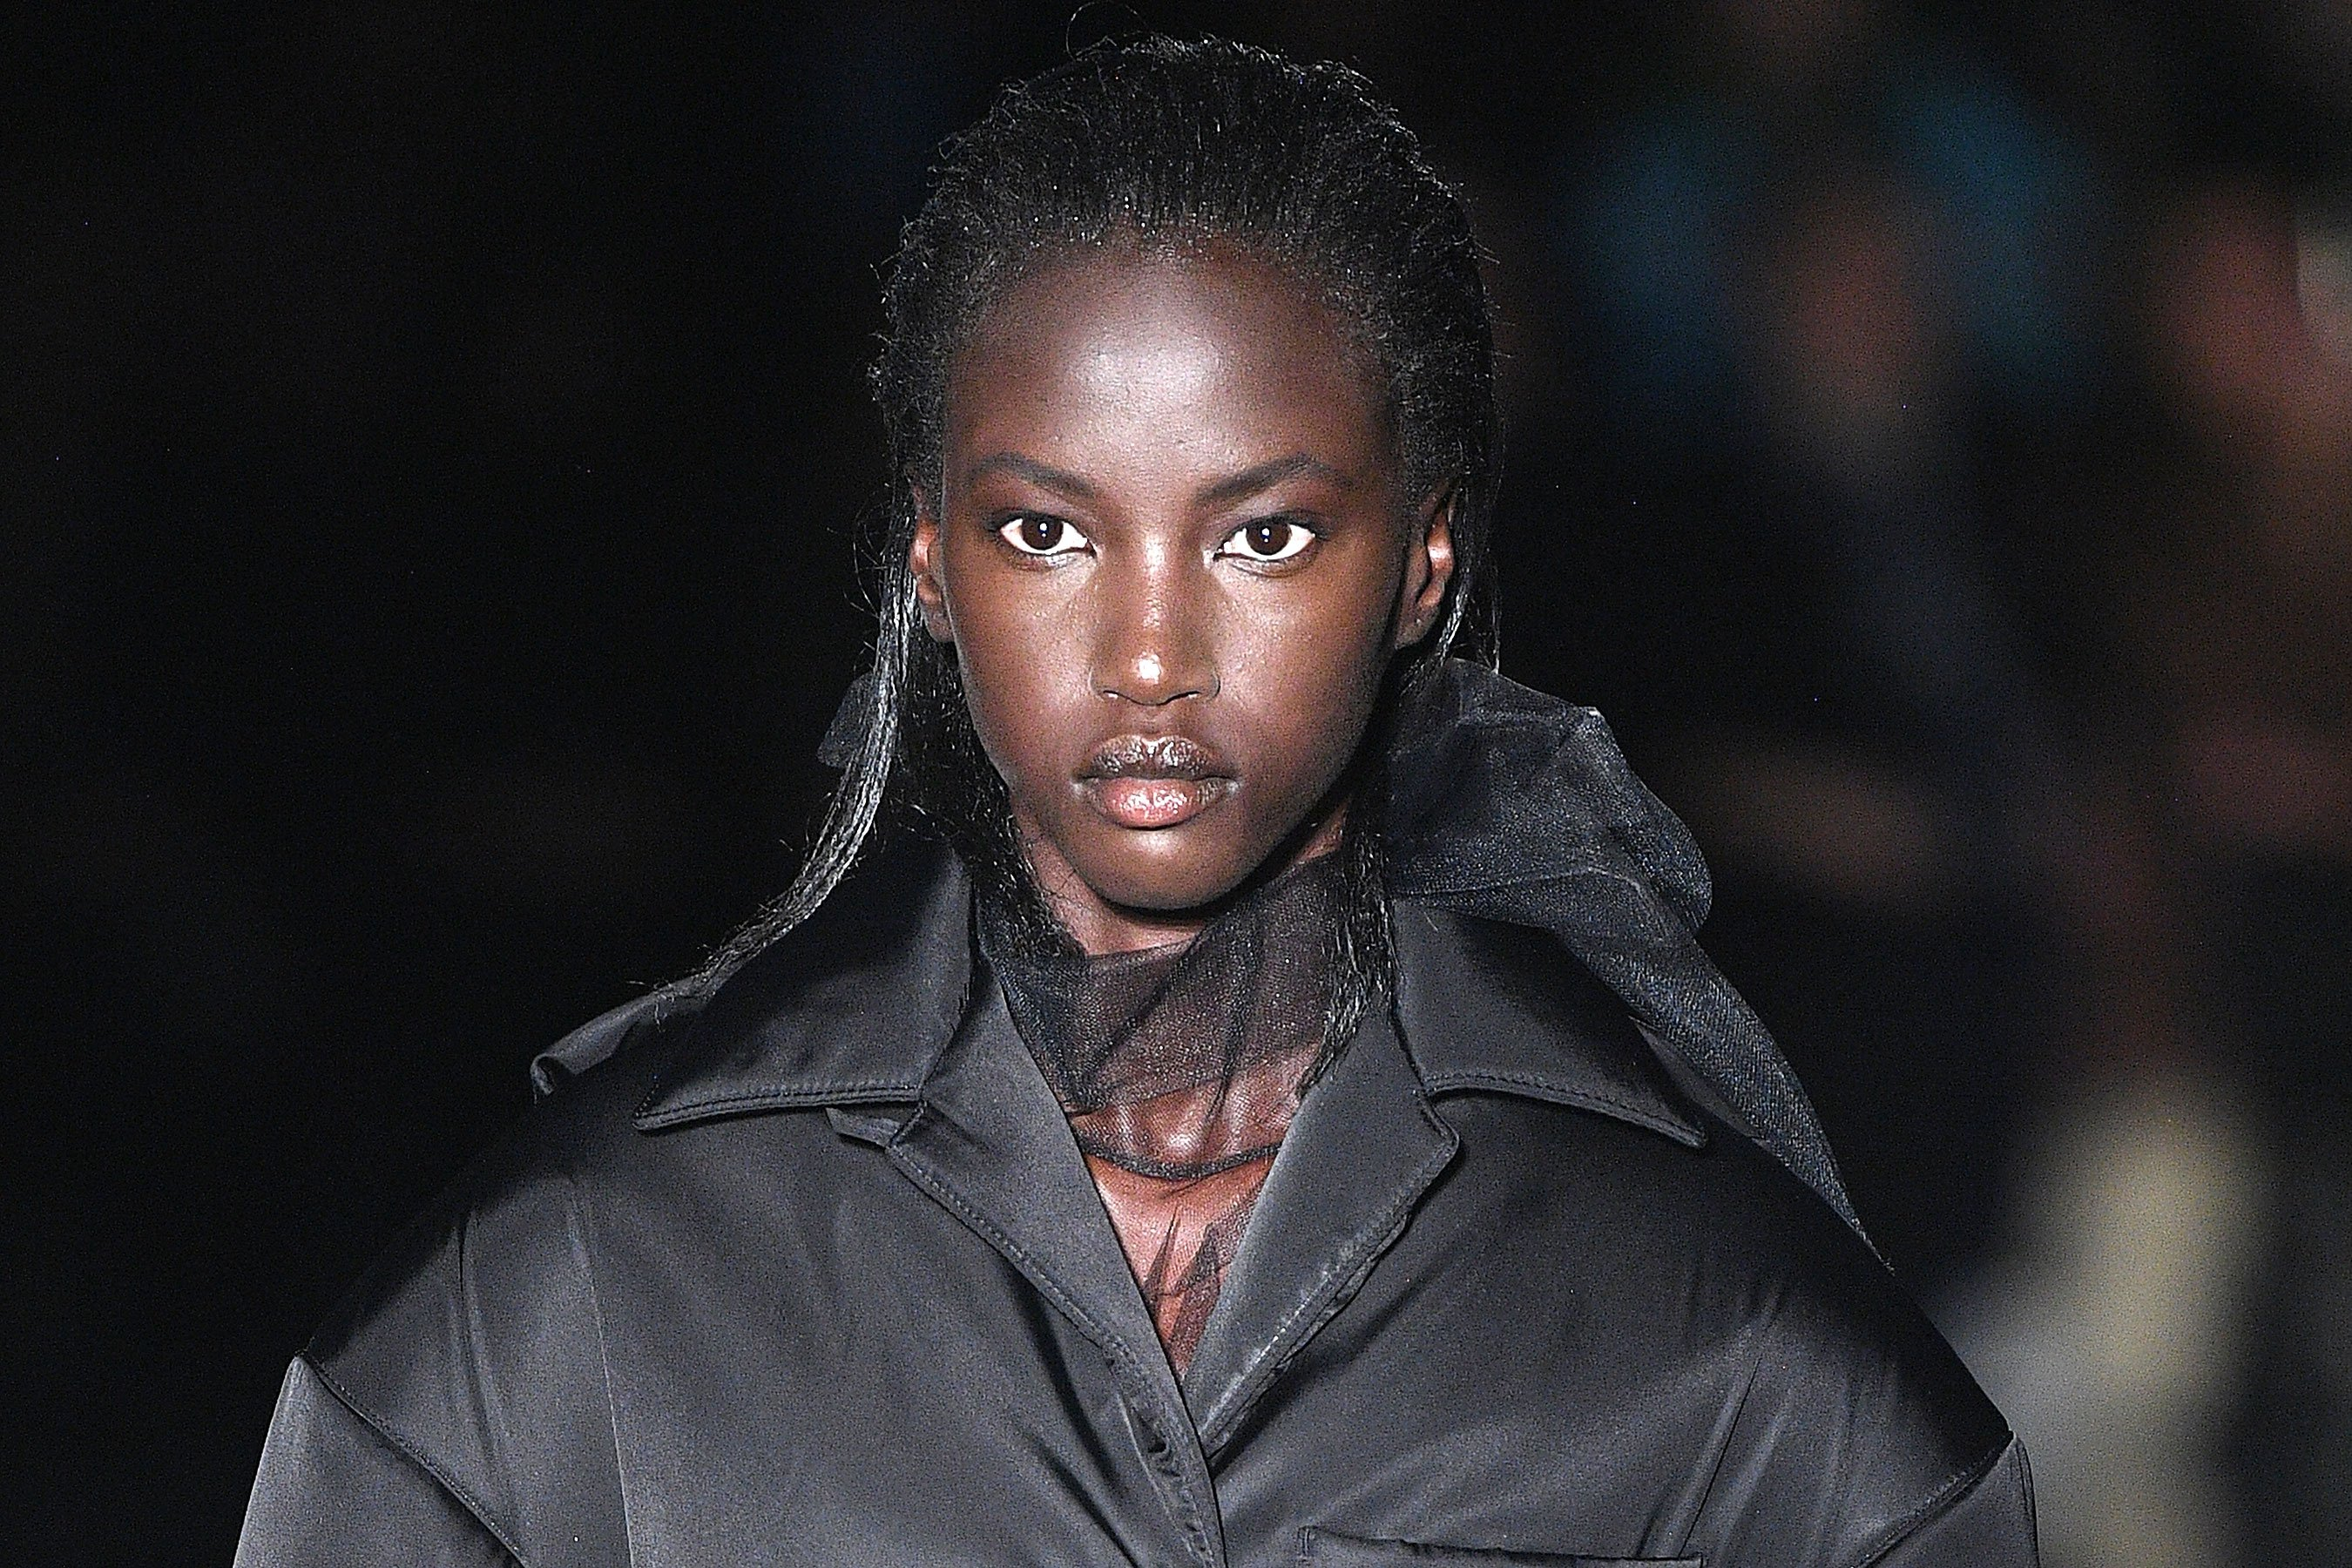 Meet Estée Lauder's New Face Anok Yai, the Rising Model Making History in the Fashion Industry